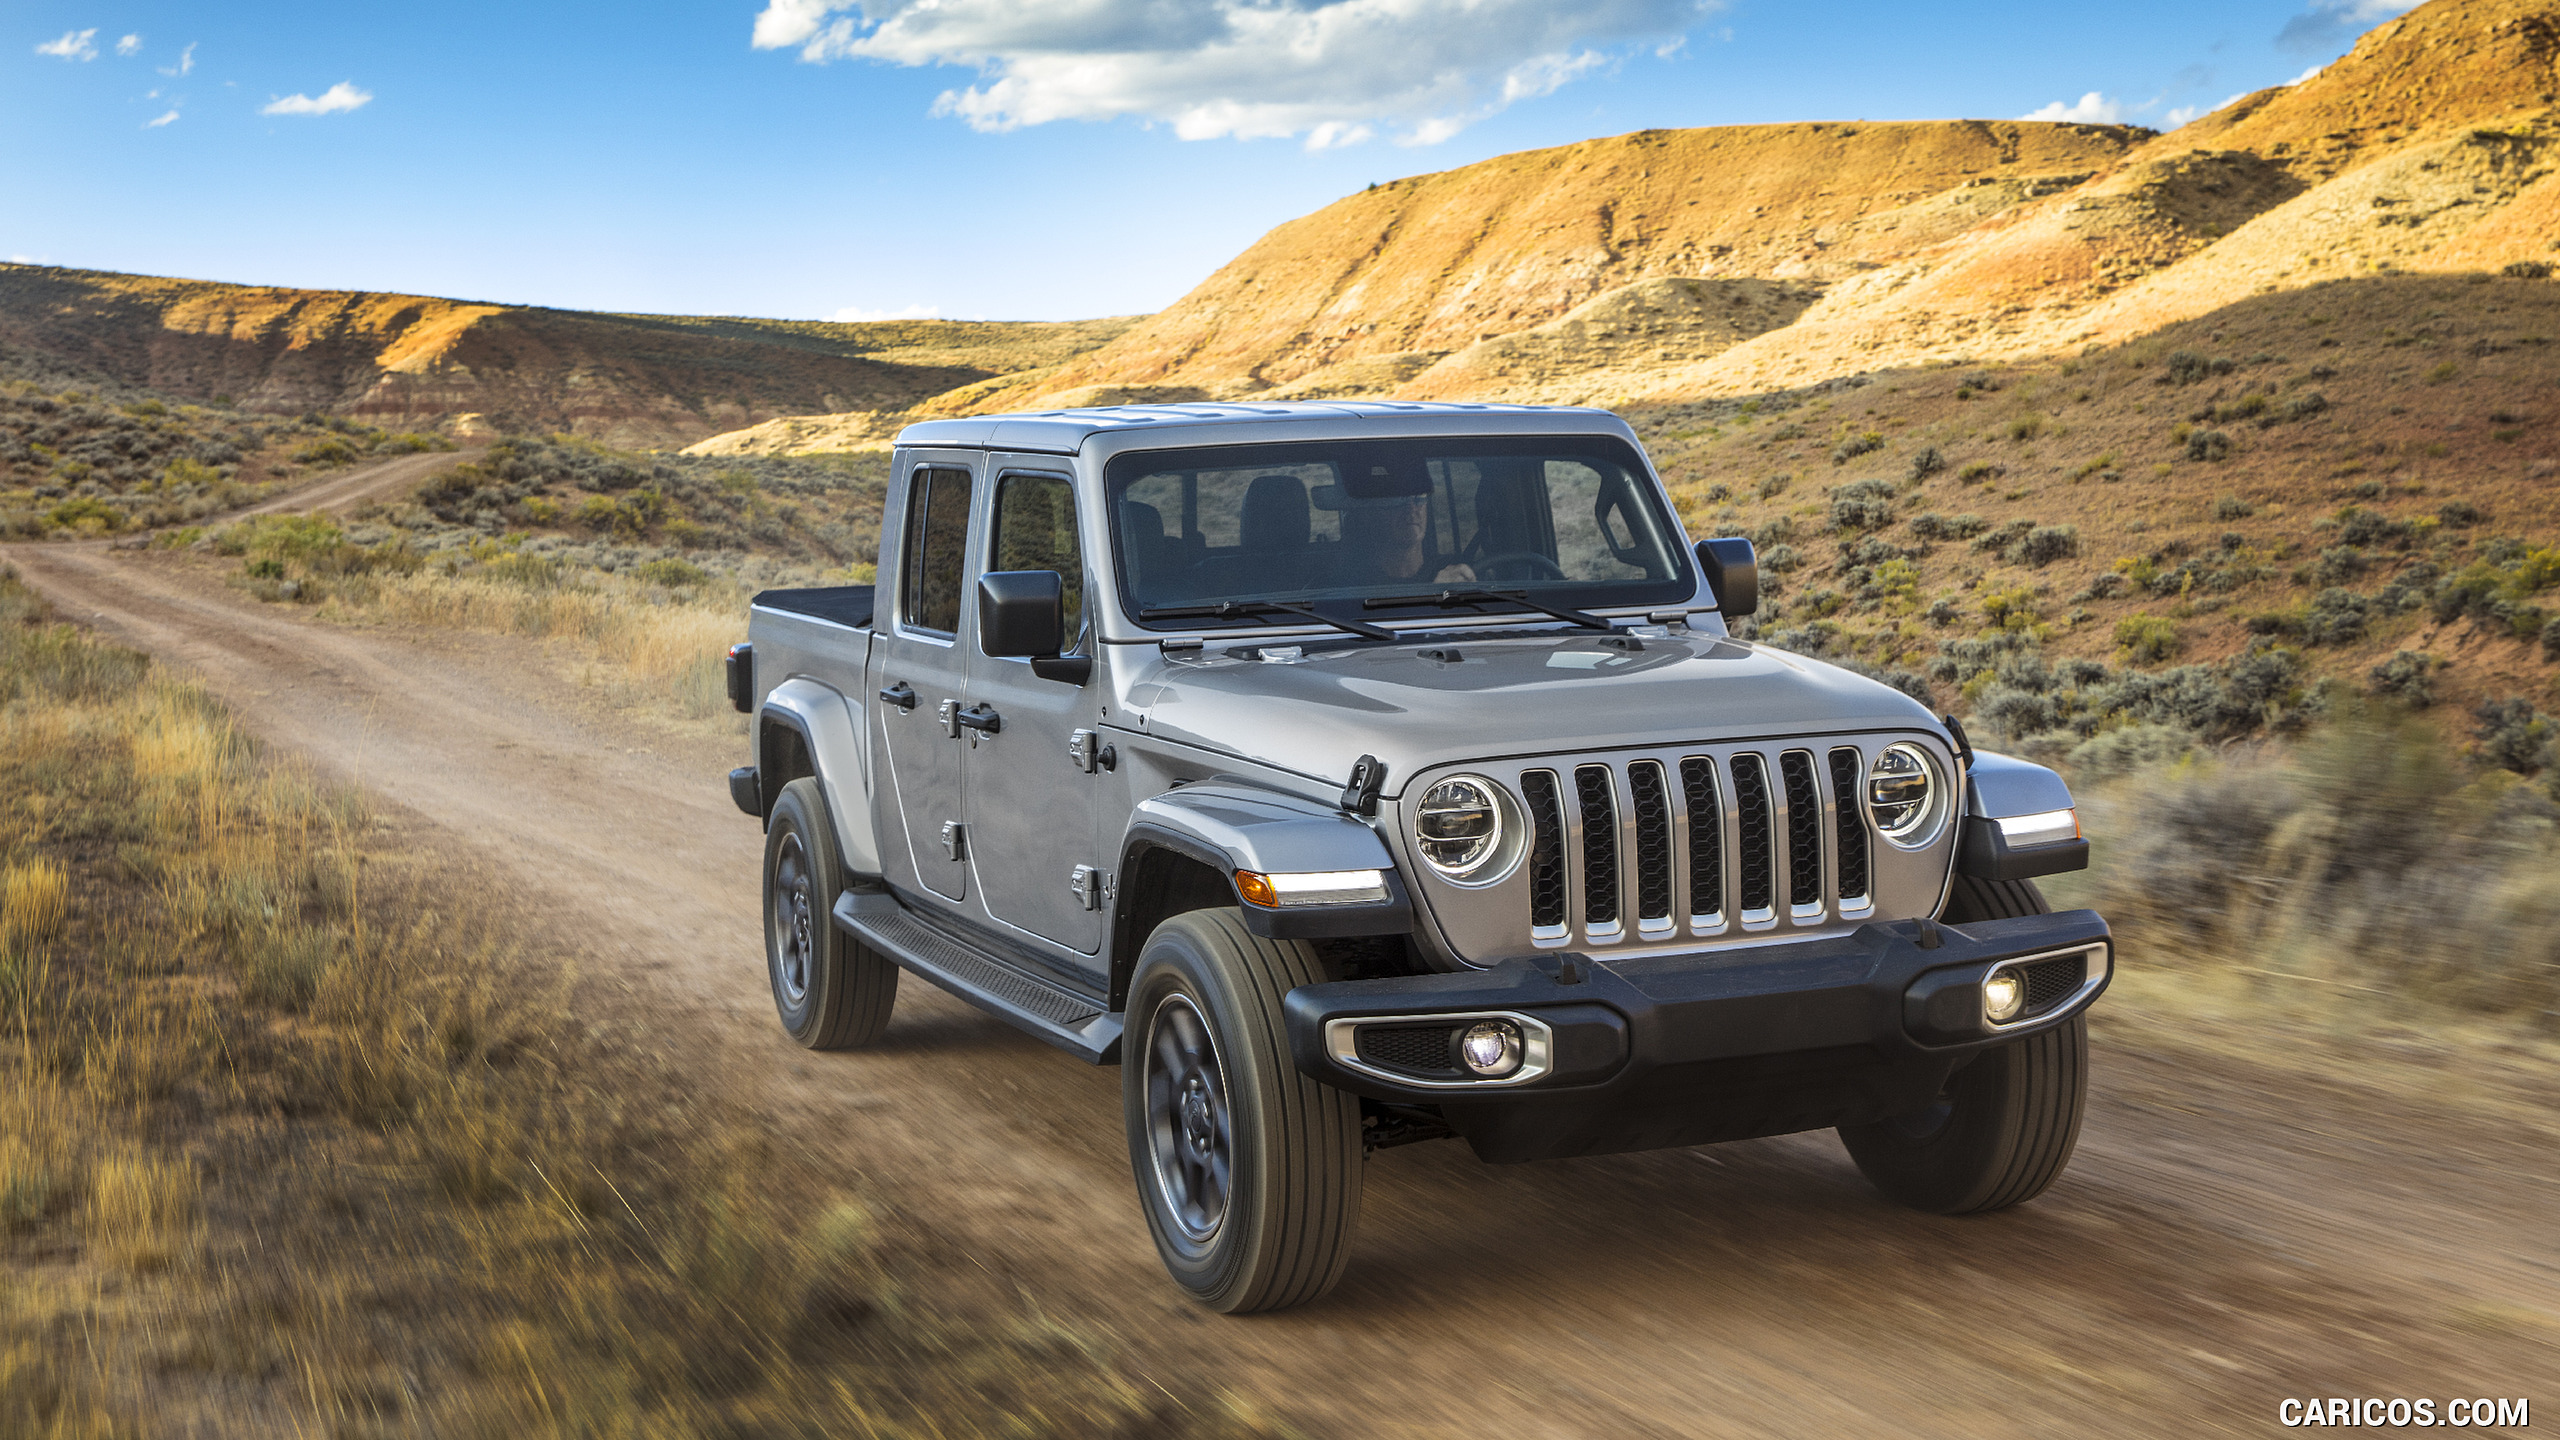 2020 Jeep Gladiator Overland   Front Three Quarter HD Wallpaper 201 2560x1440